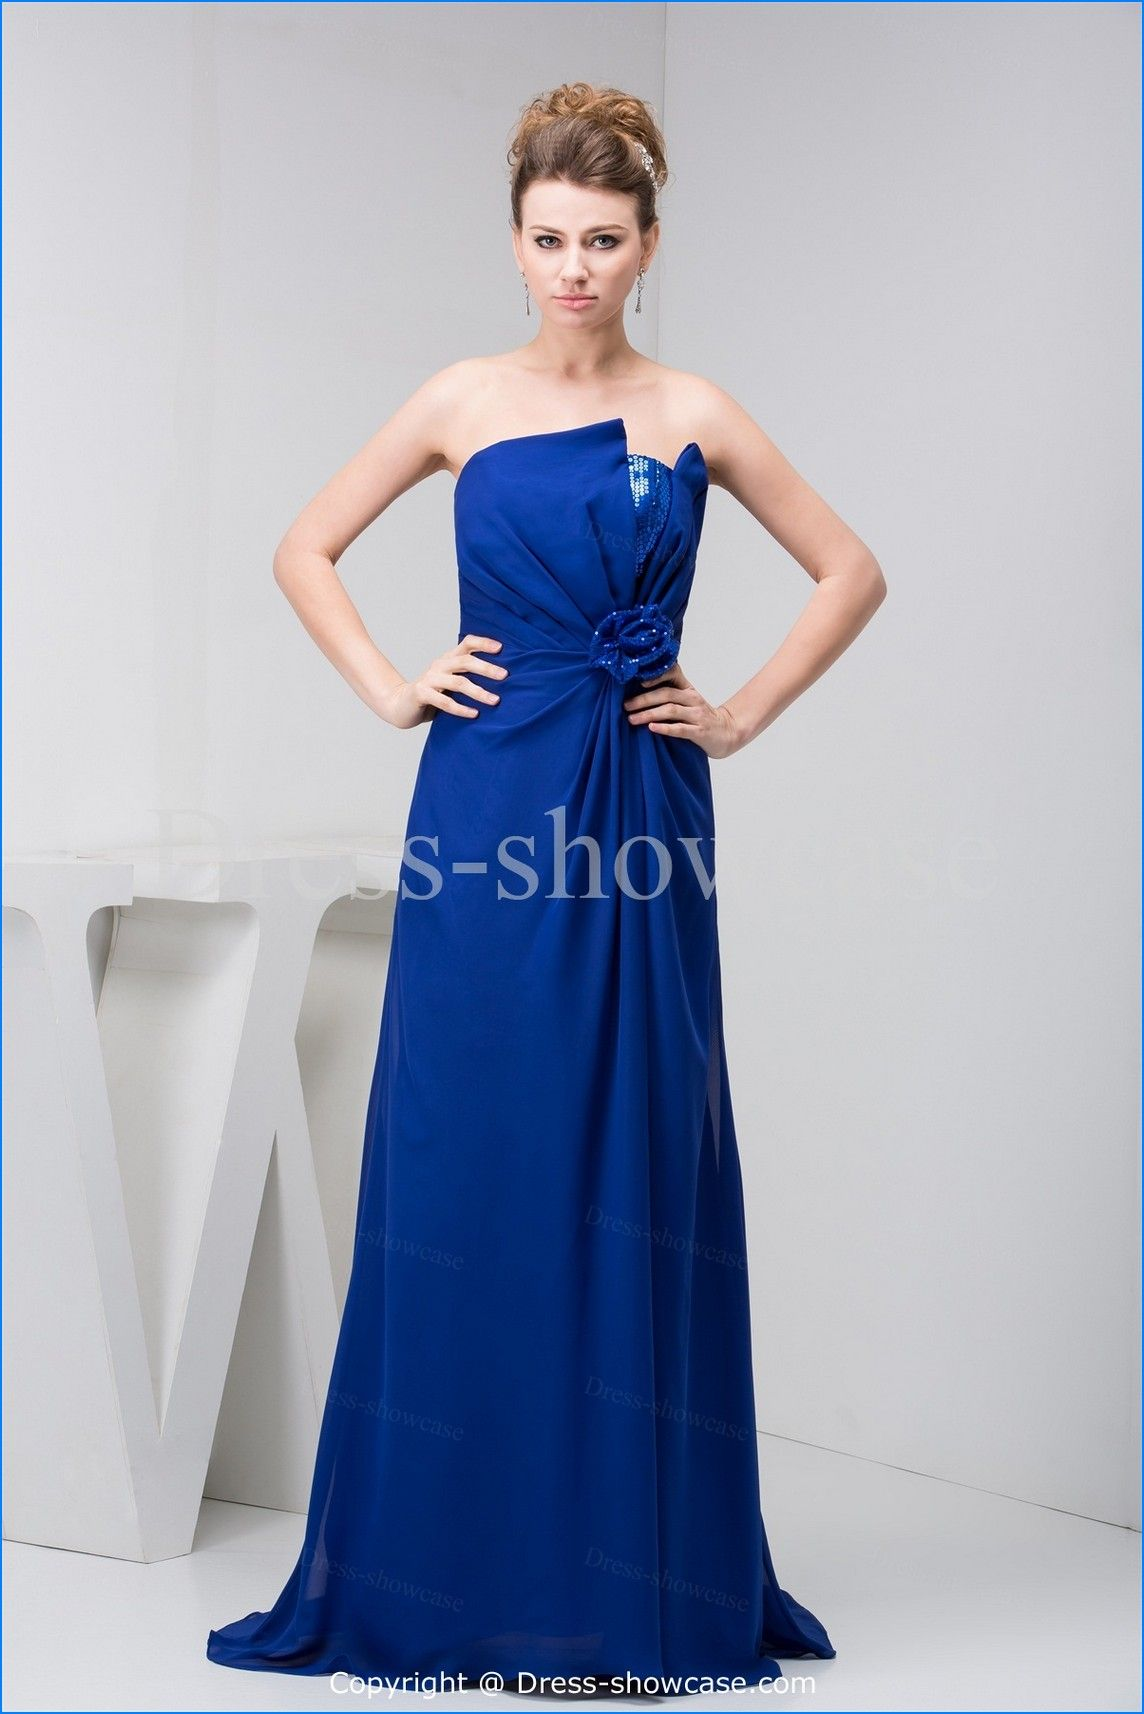 Royal blue dress for wedding guest  Royal Blue And Silver Wedding Dresses  My wedding colors